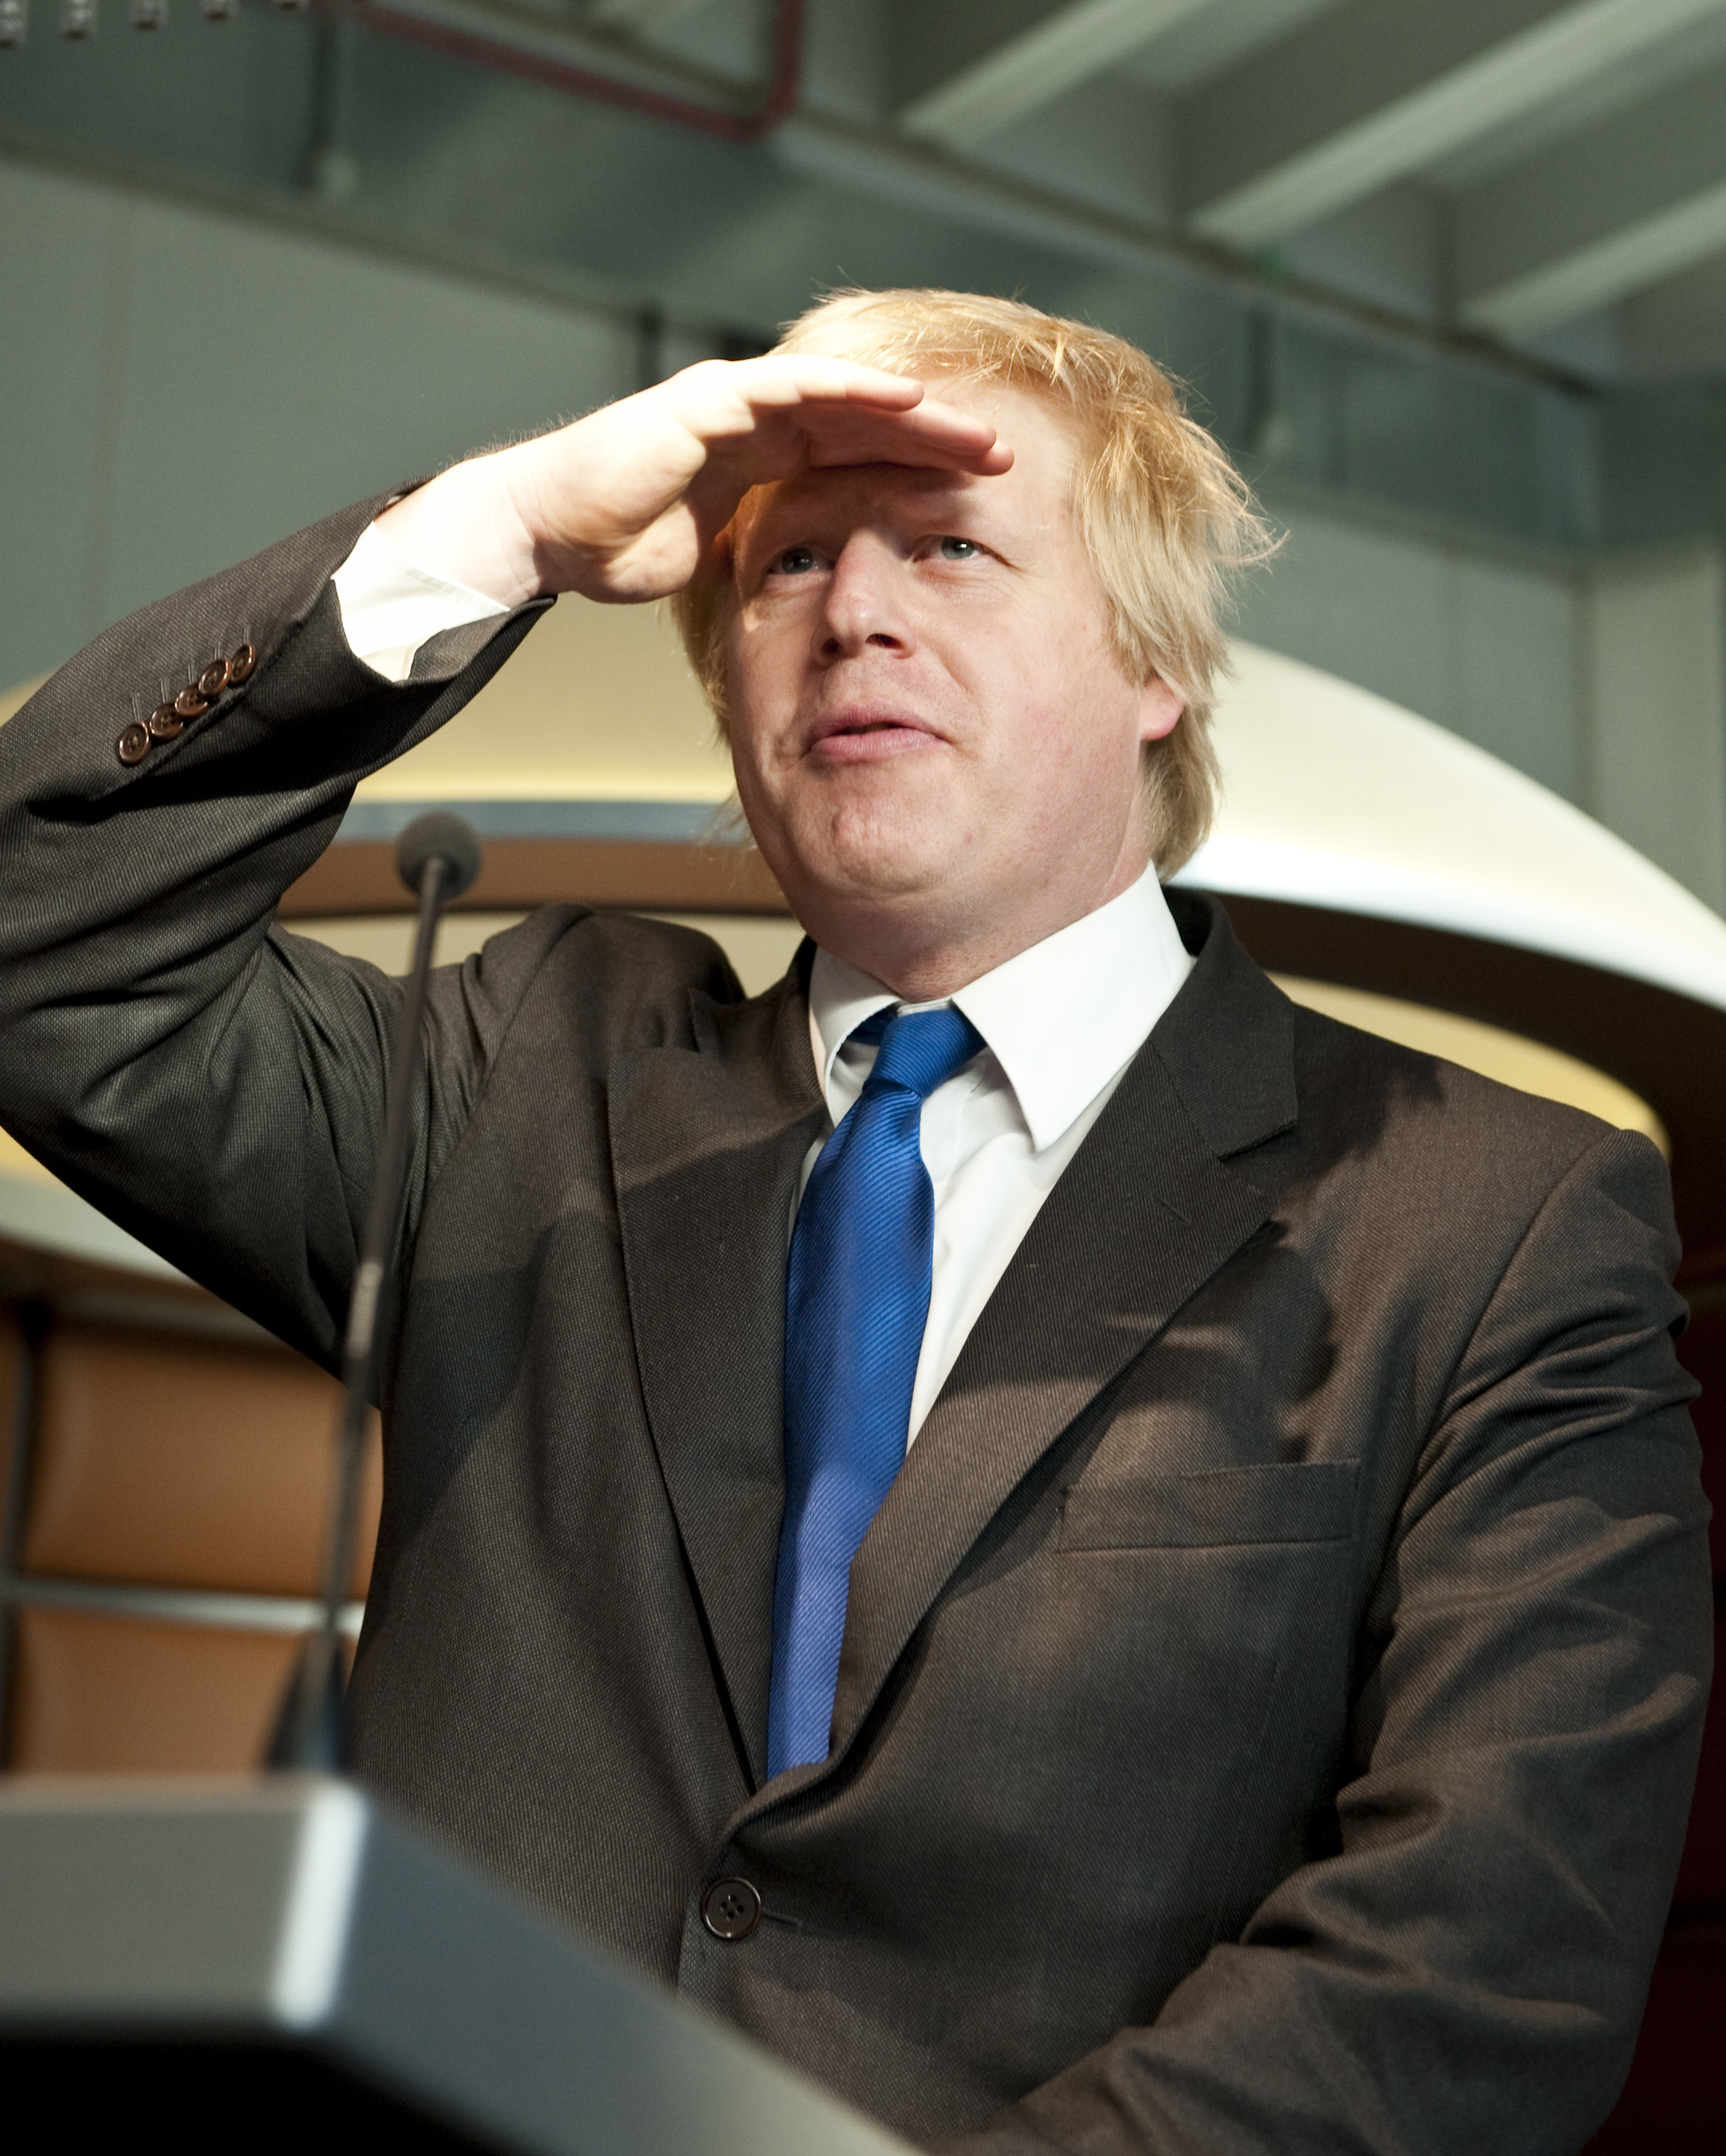 Boris Johnson speaks at the �20 Million Opening of the Galleries of Modern London at the Museum of London, London, 27th May 2010.